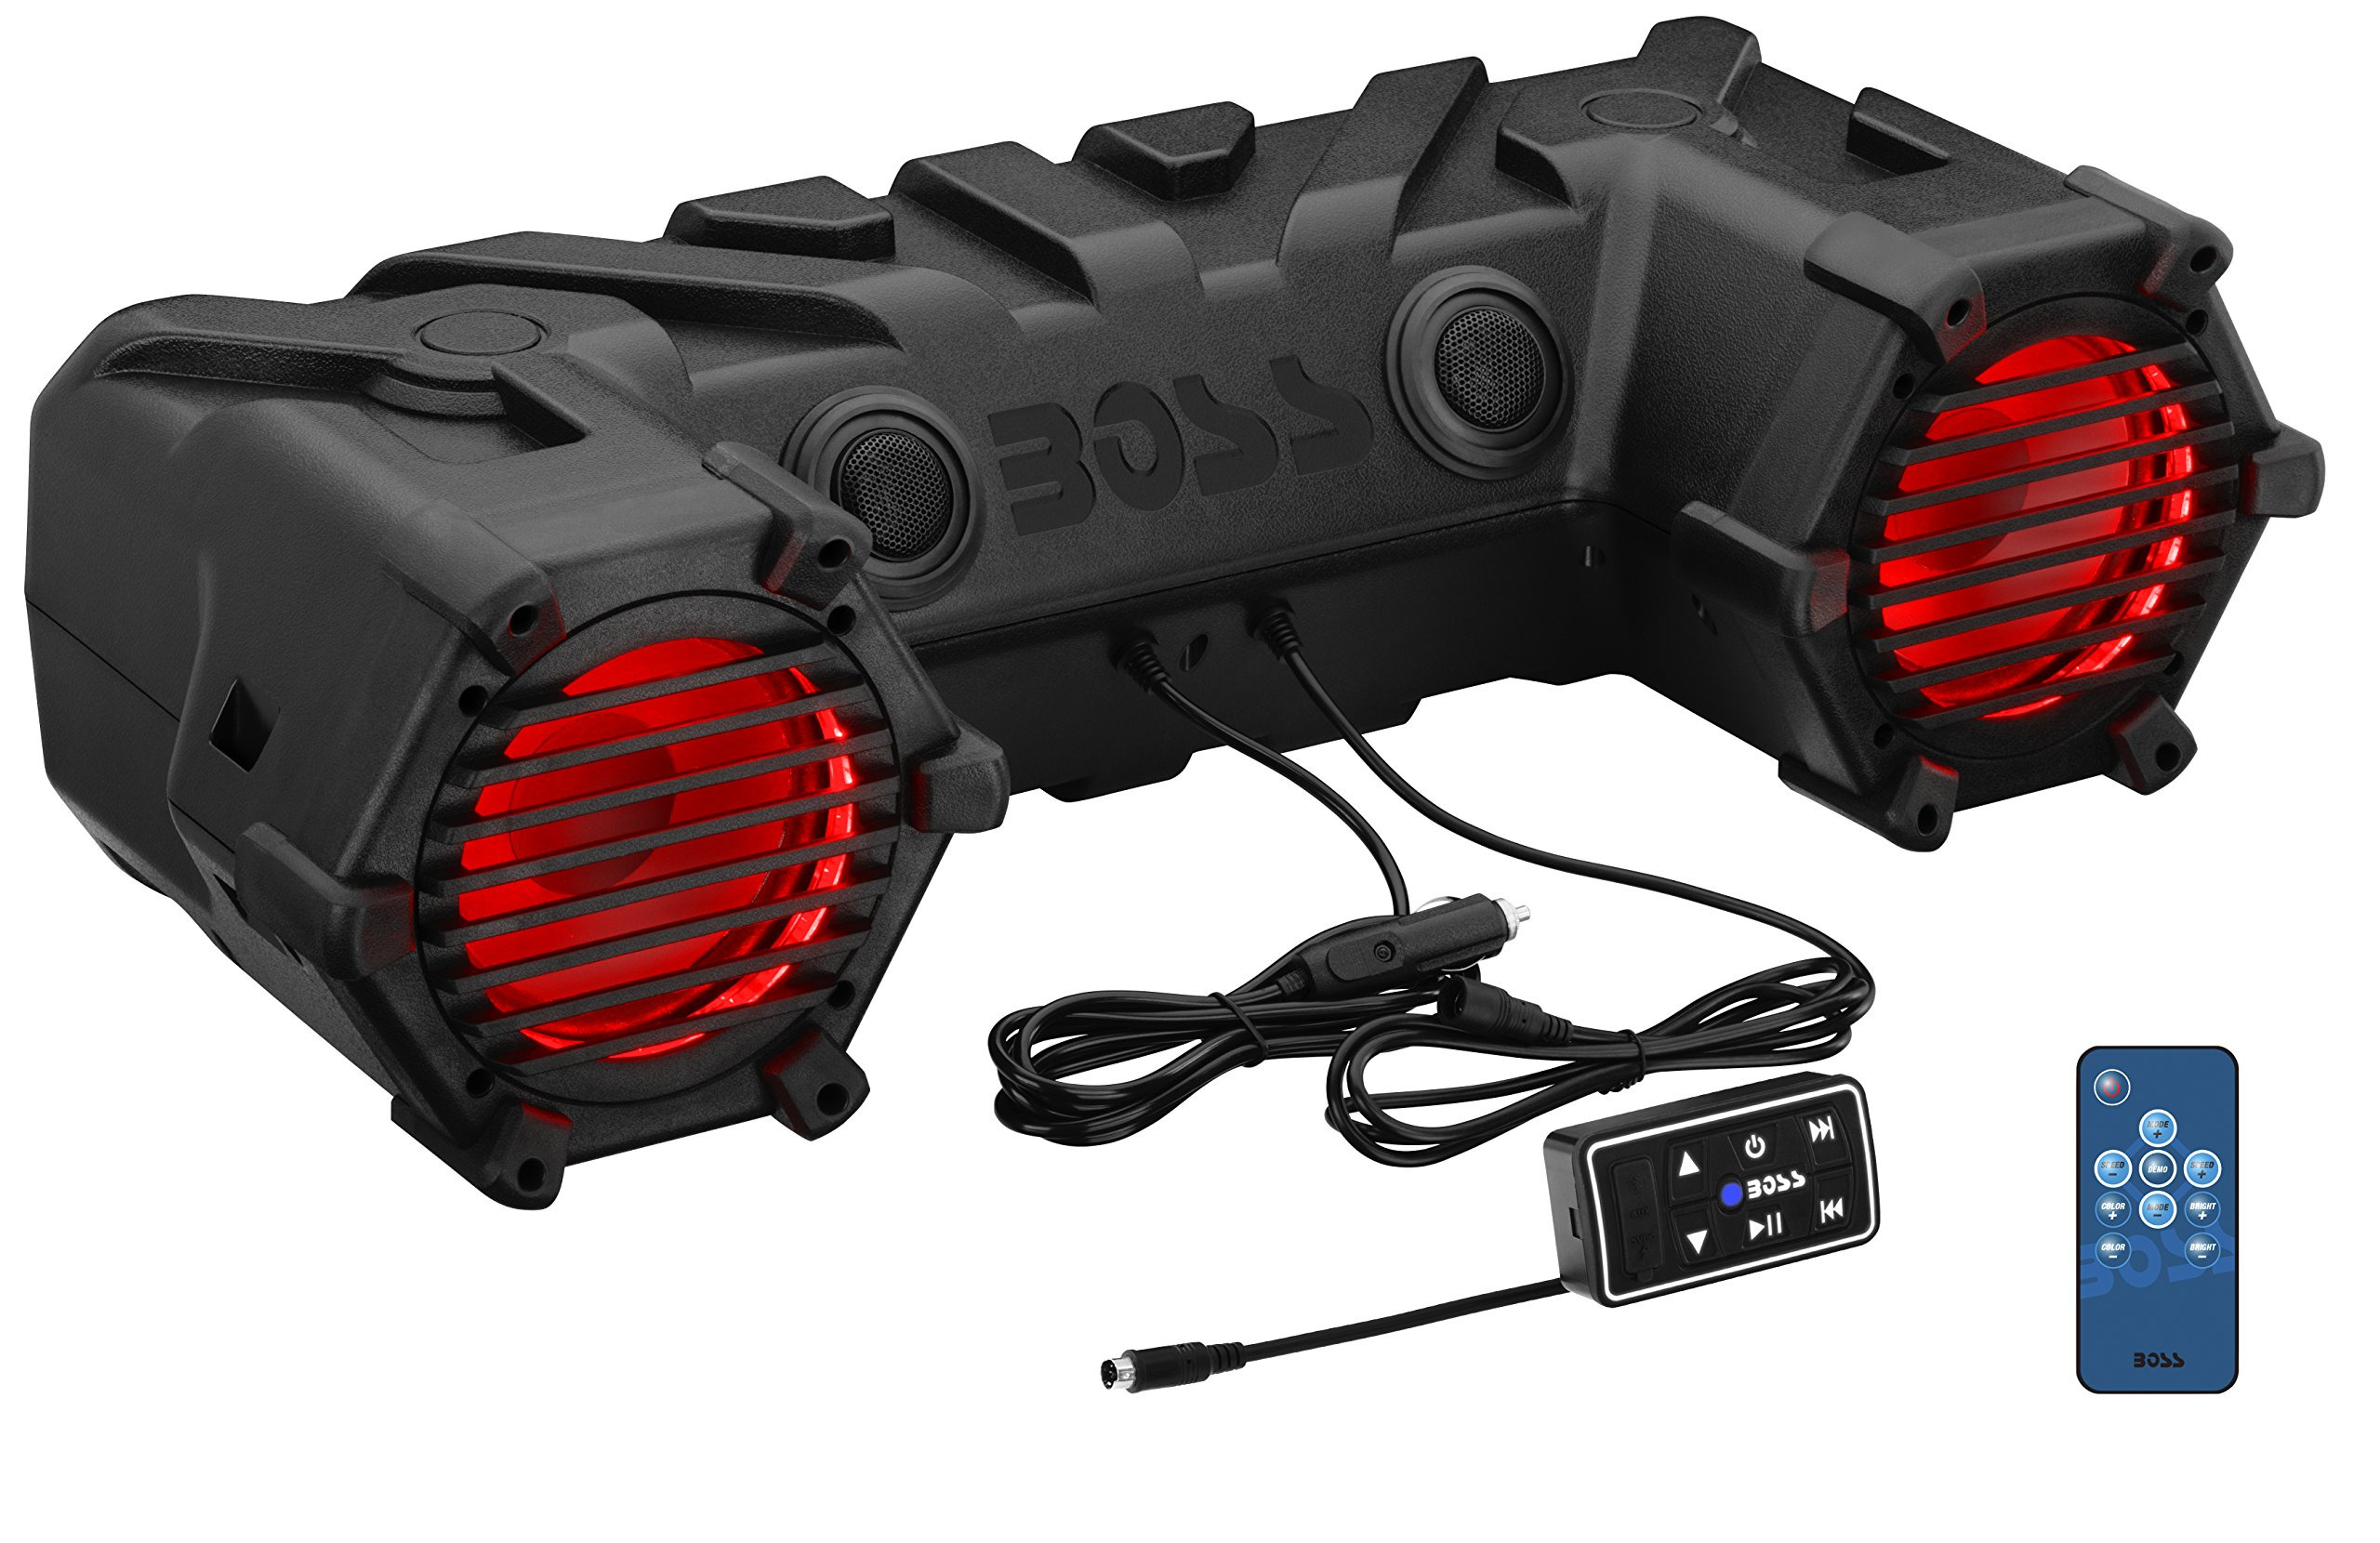 BOSS Audio ATV30BRGB Bluetooth, Amplified,  Multi-Color Illumination, ATV/UTV Sound System, Weather-Proof Marine Grade, Bluetooth Remote, 12 Volt Application Friendly